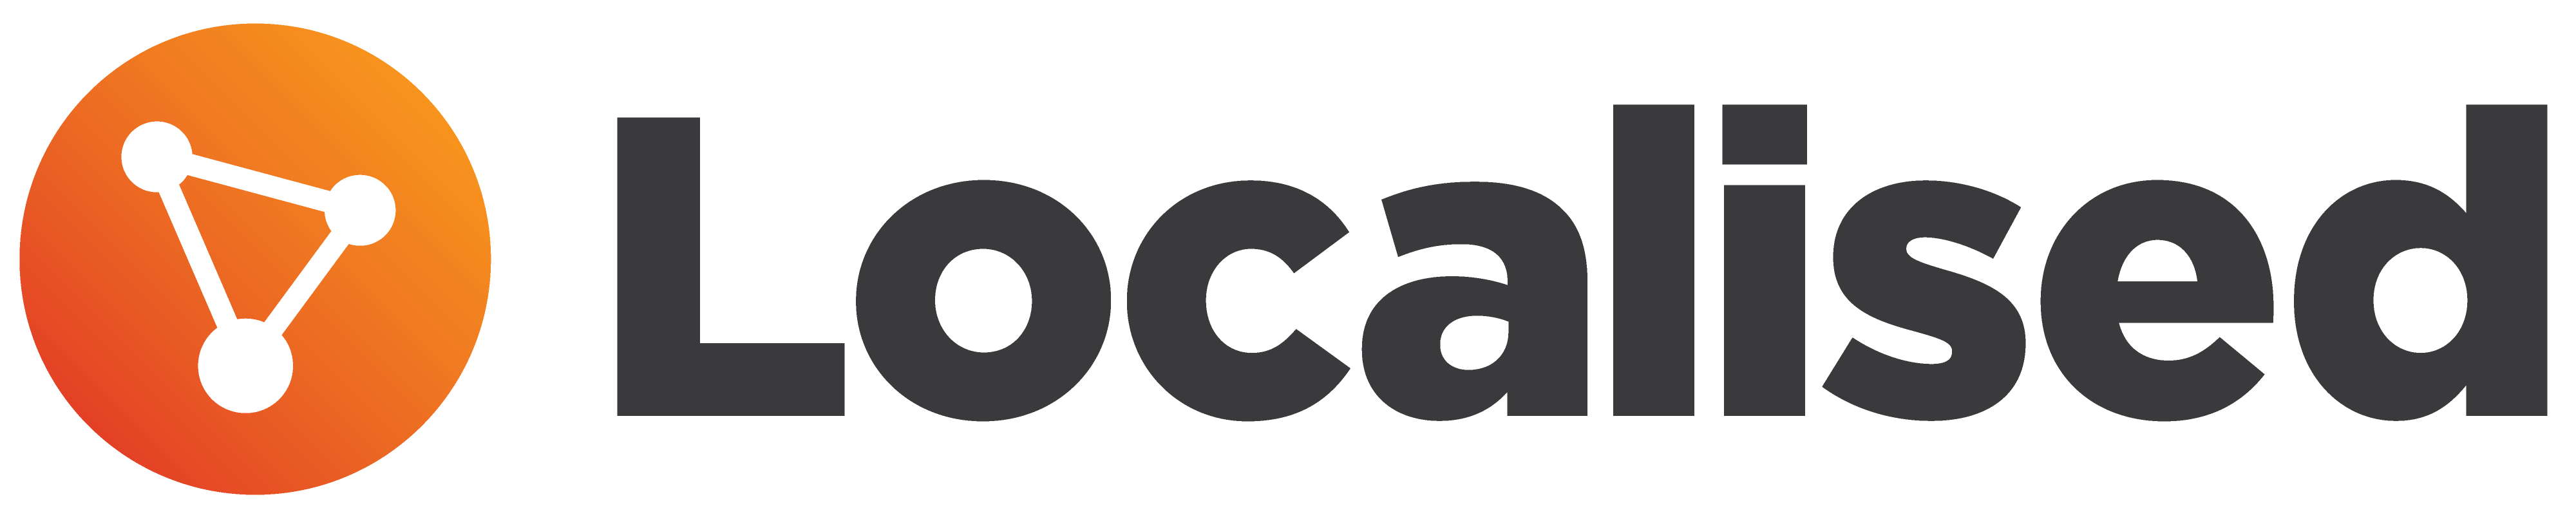 Localised_Revised-logo-2018_Dark-Grey.png